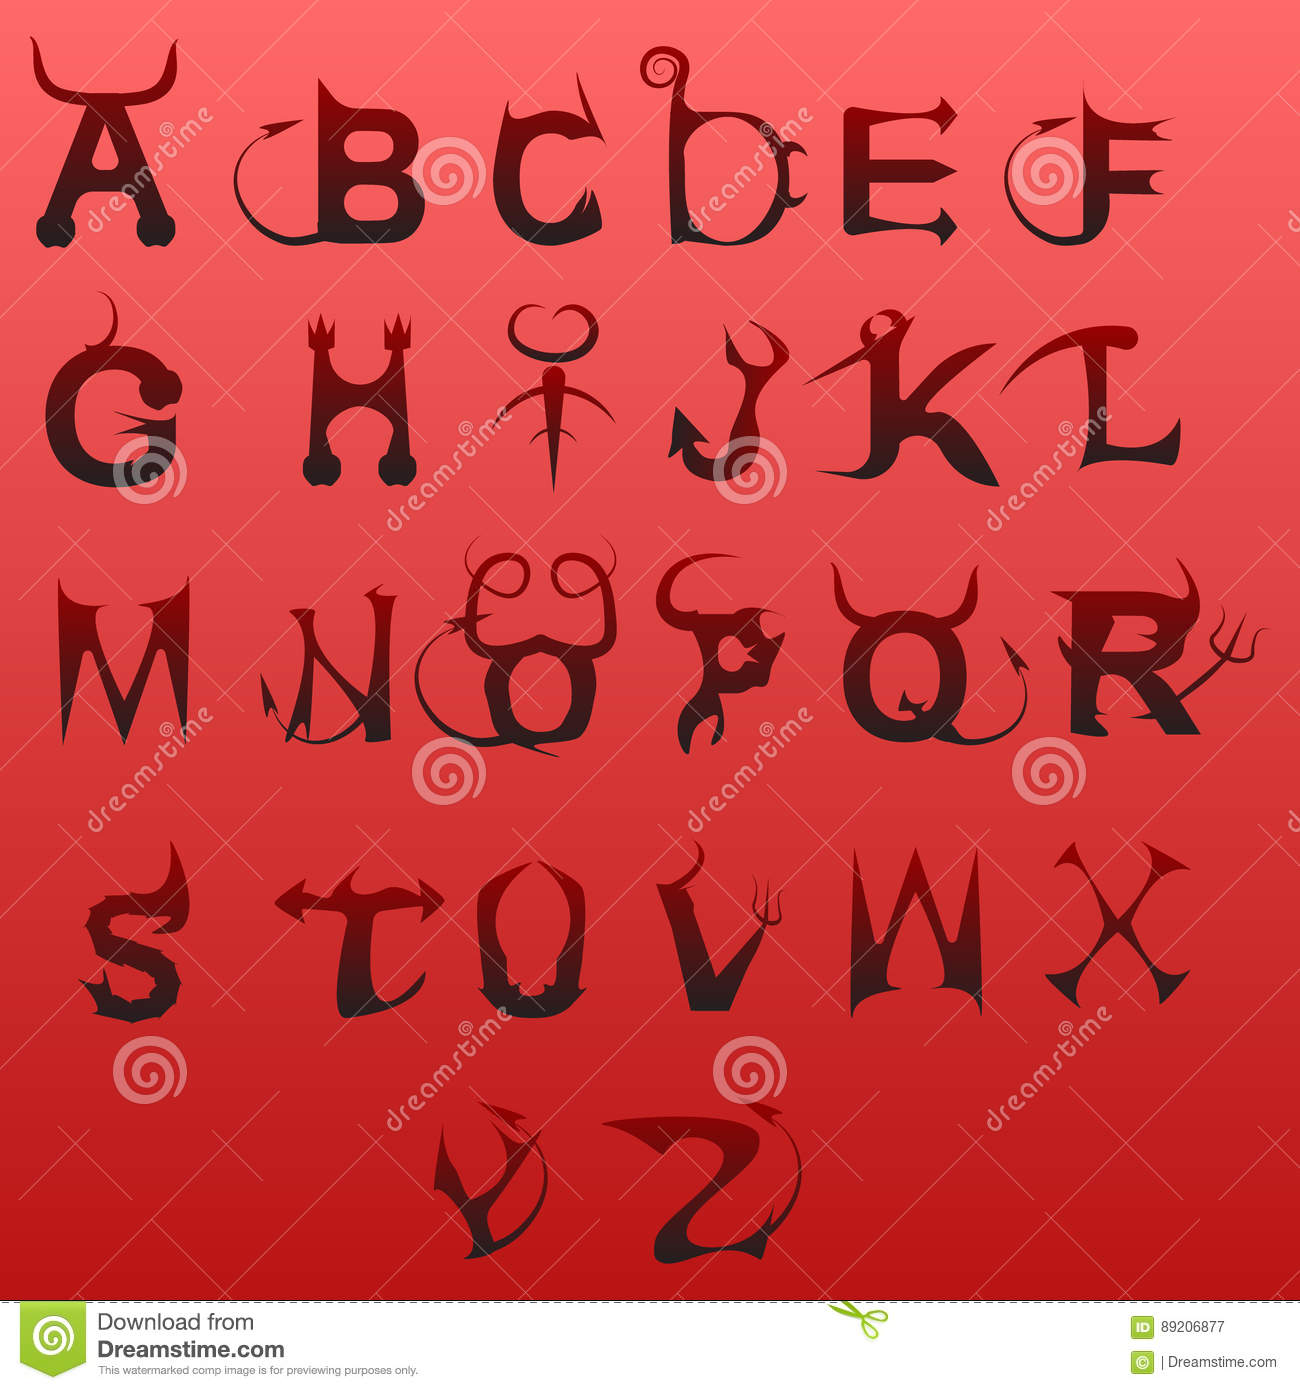 Lucifer Font: Type Stock Vector. Image Of Style, Mystical, Sign, Type